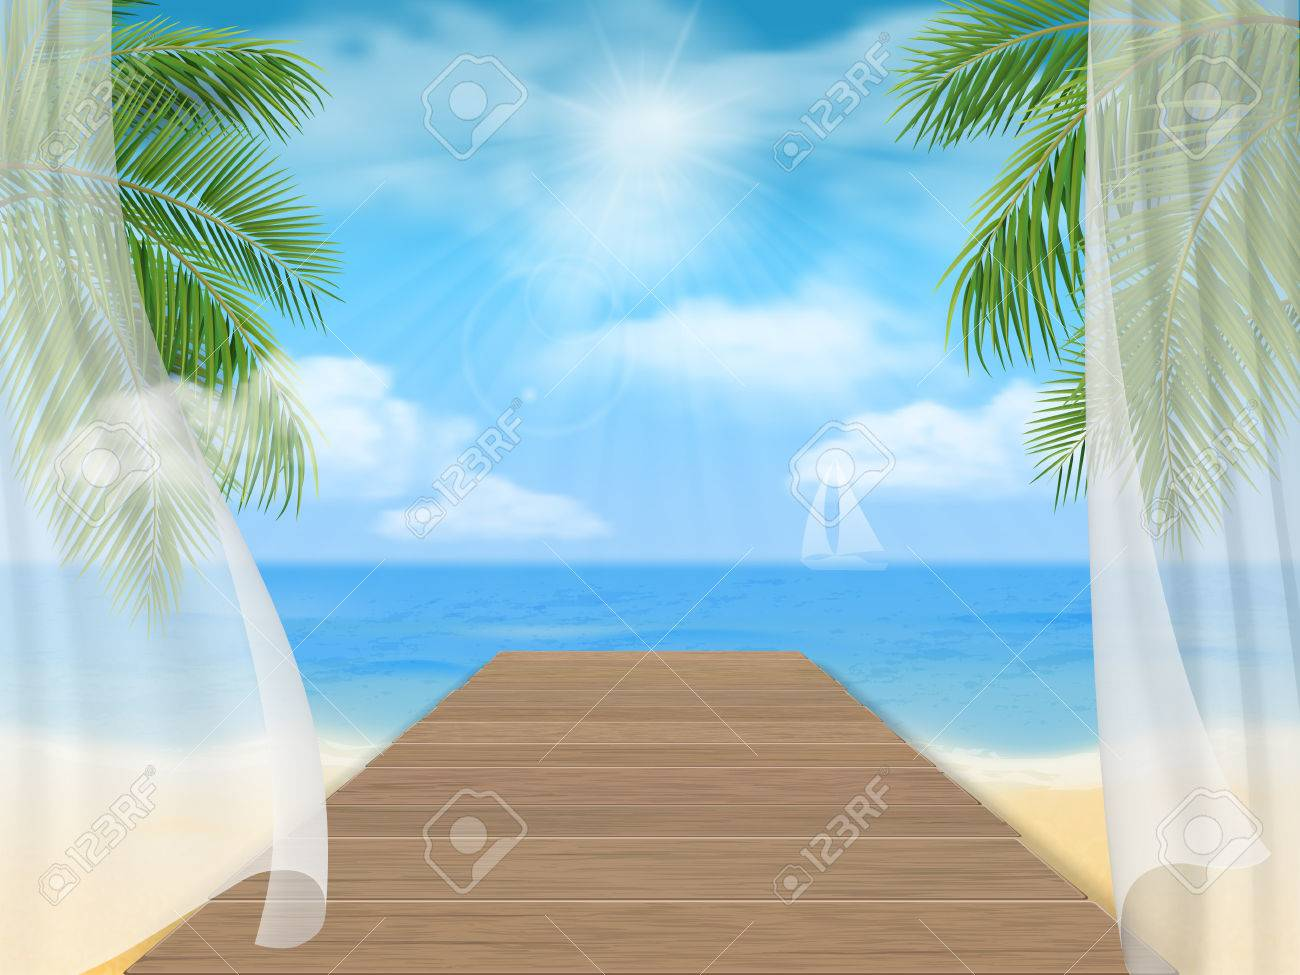 Open window beach - View Of The Sea Beach And The Wooden Jetty Through The Open Window With